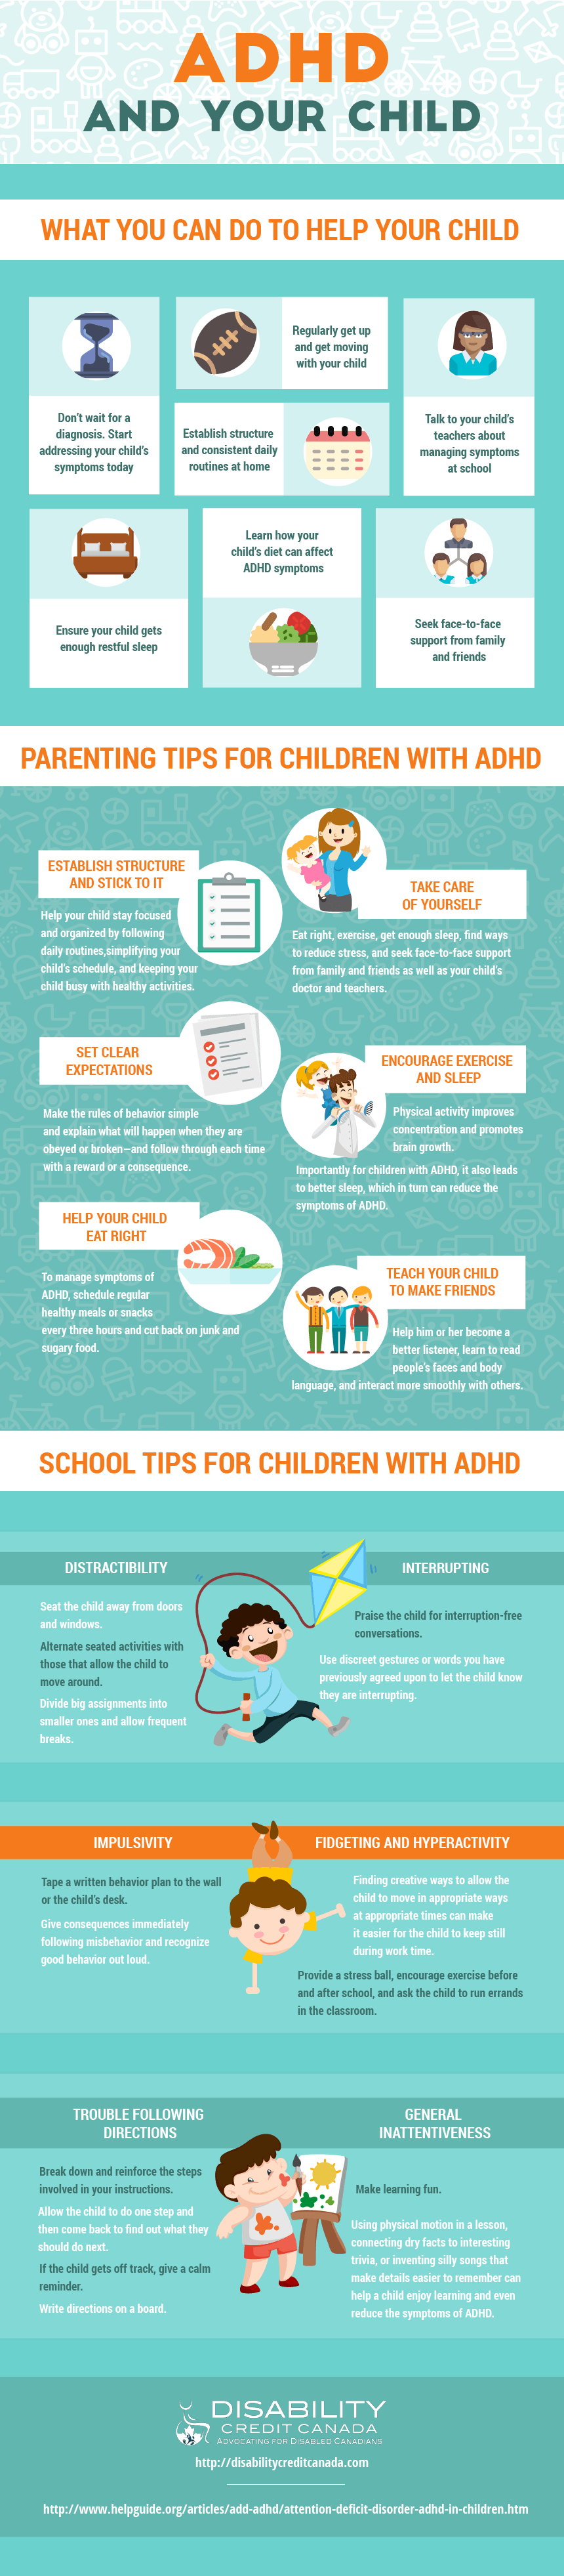 ADHD in Children Infographic